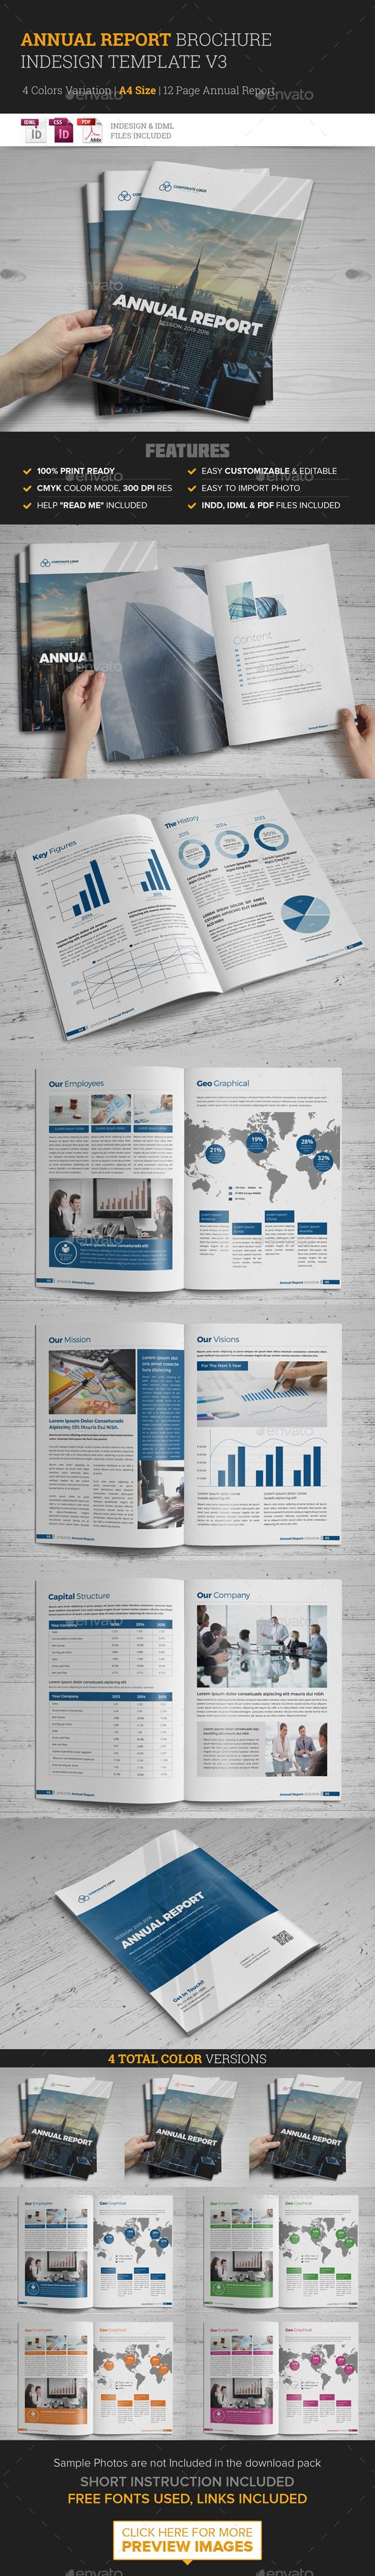 Annual Report Brochure Indesign Template #design #print Download: http://graphicriver.net/item/annual-report-brochure-indesign-template-3/11985869?ref=ksioks